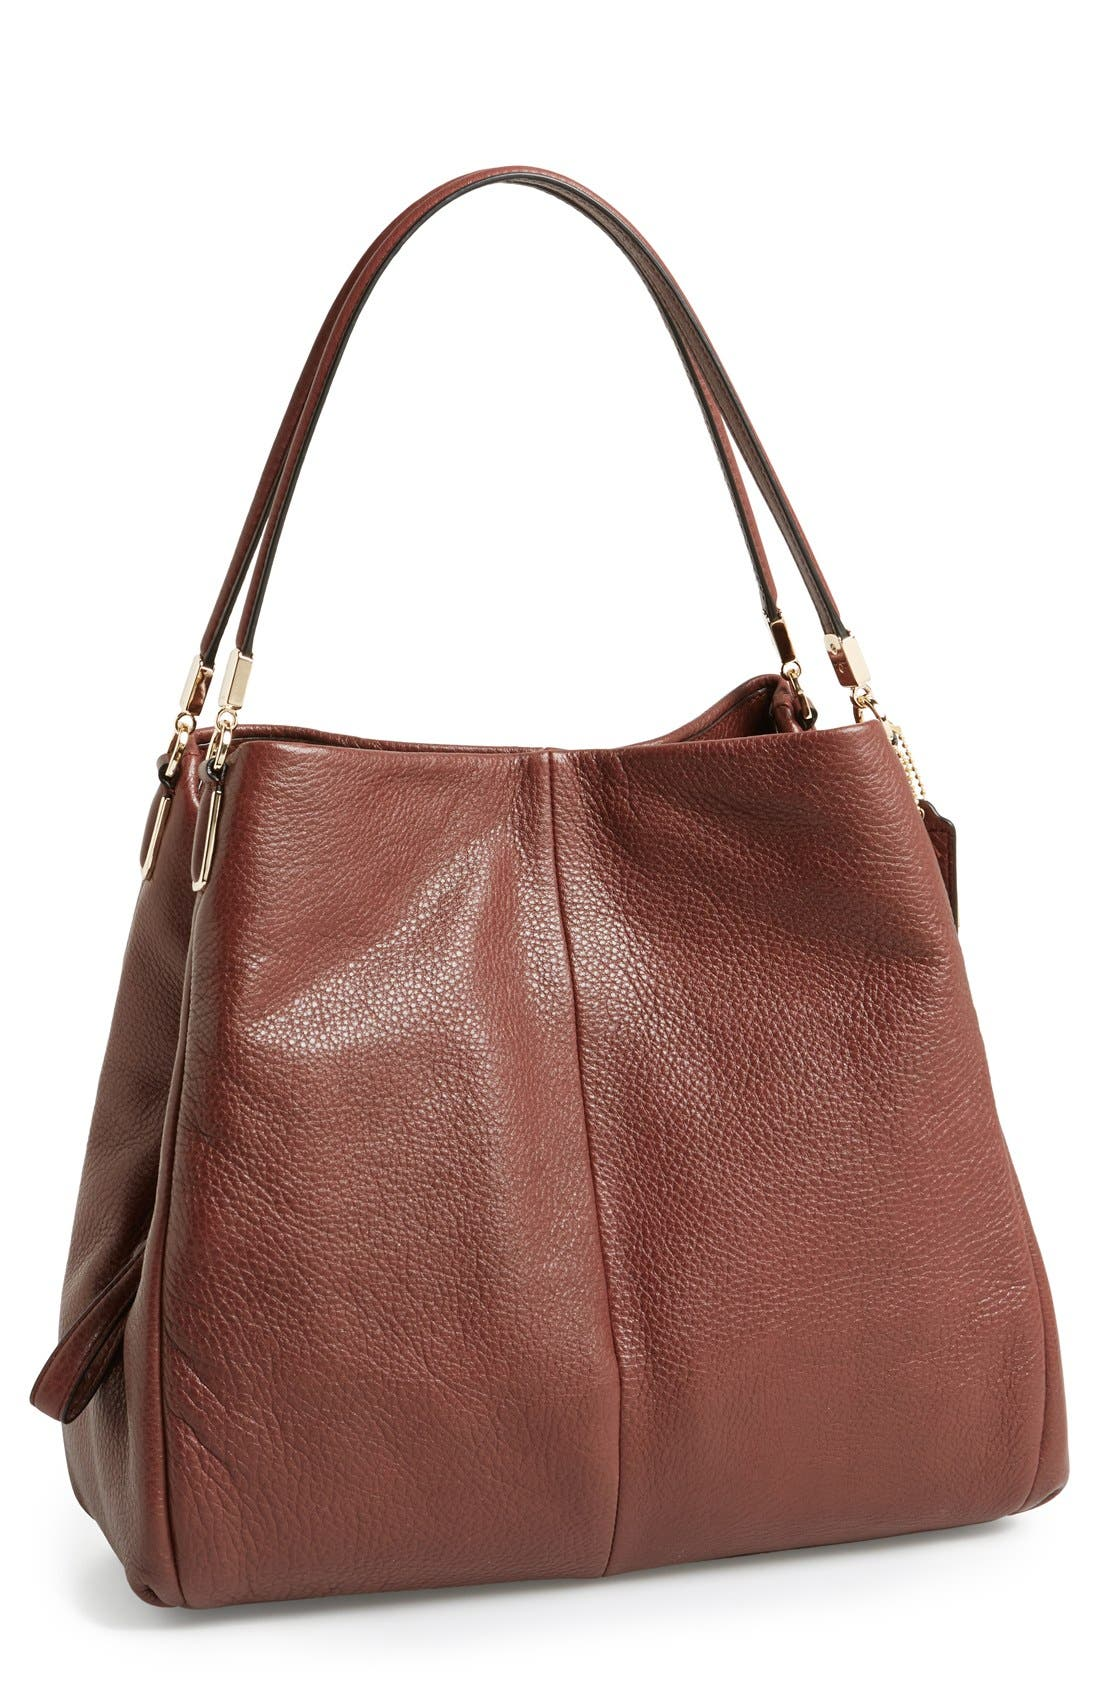 Alternate Image 1 Selected - COACH 'Small Madison Phoebe' Leather Shoulder Bag